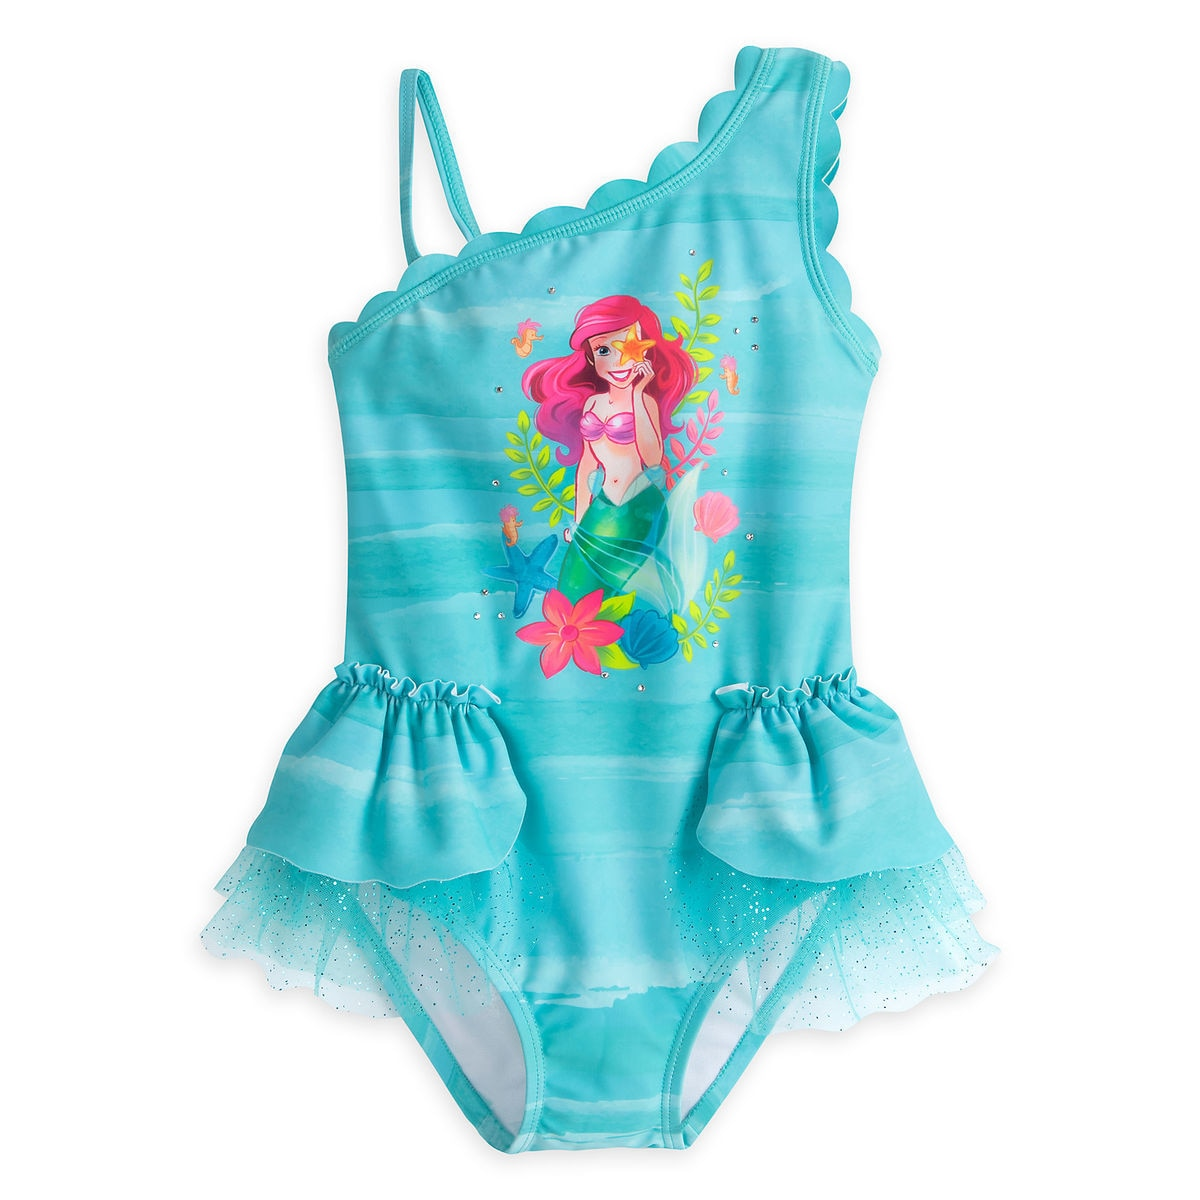 5733138cbf7e7 Product Image of Ariel Deluxe Swimsuit for Girls   1